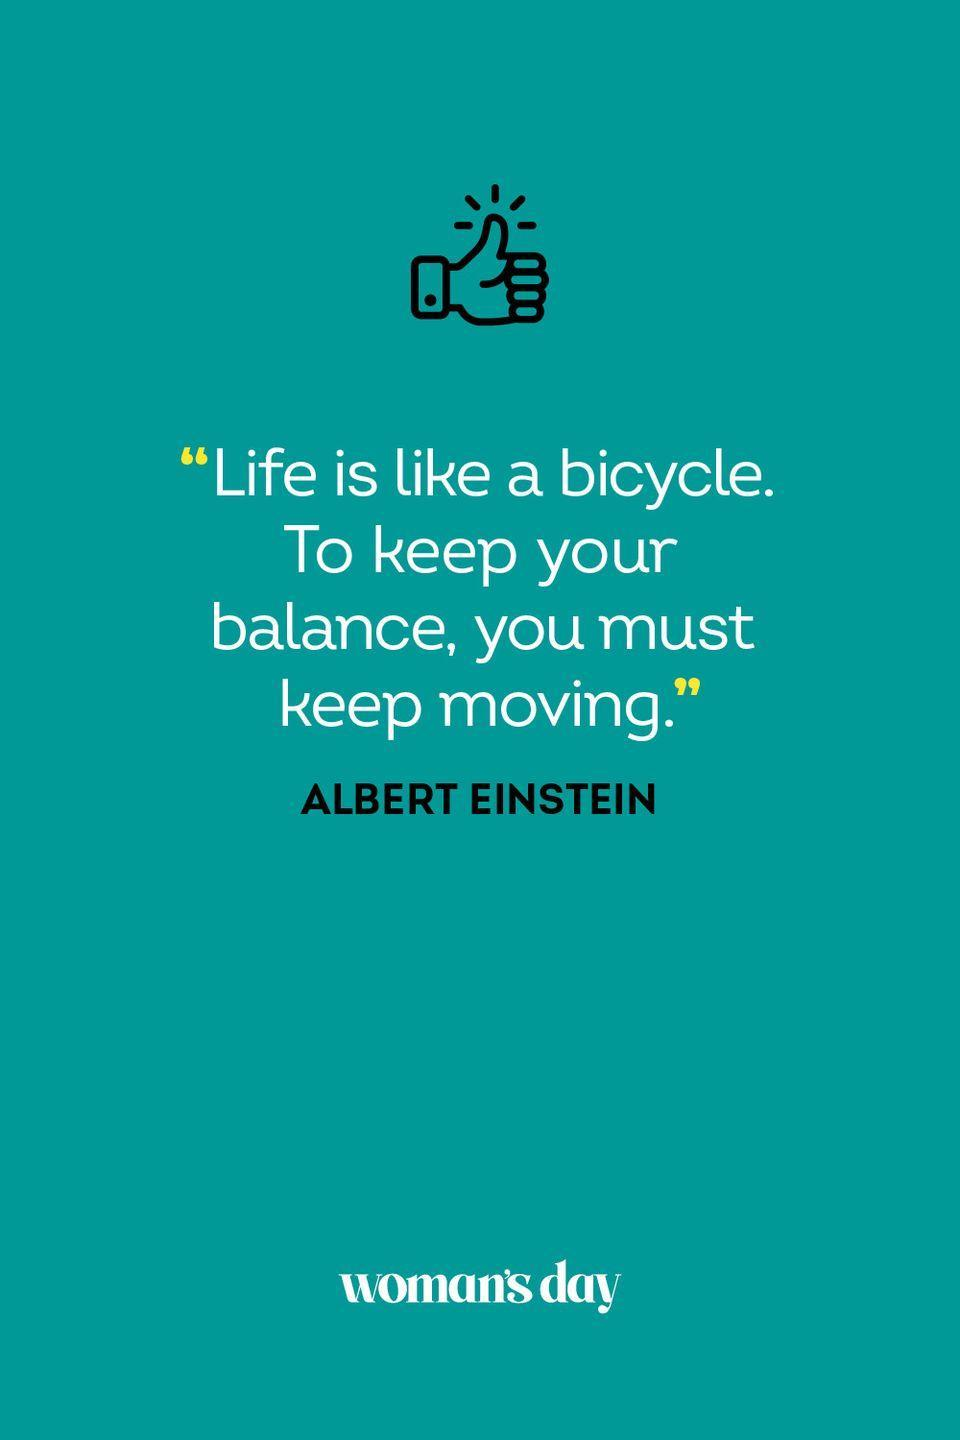 <p>Life is like a bicycle. To keep your balance, you must keep moving.</p>